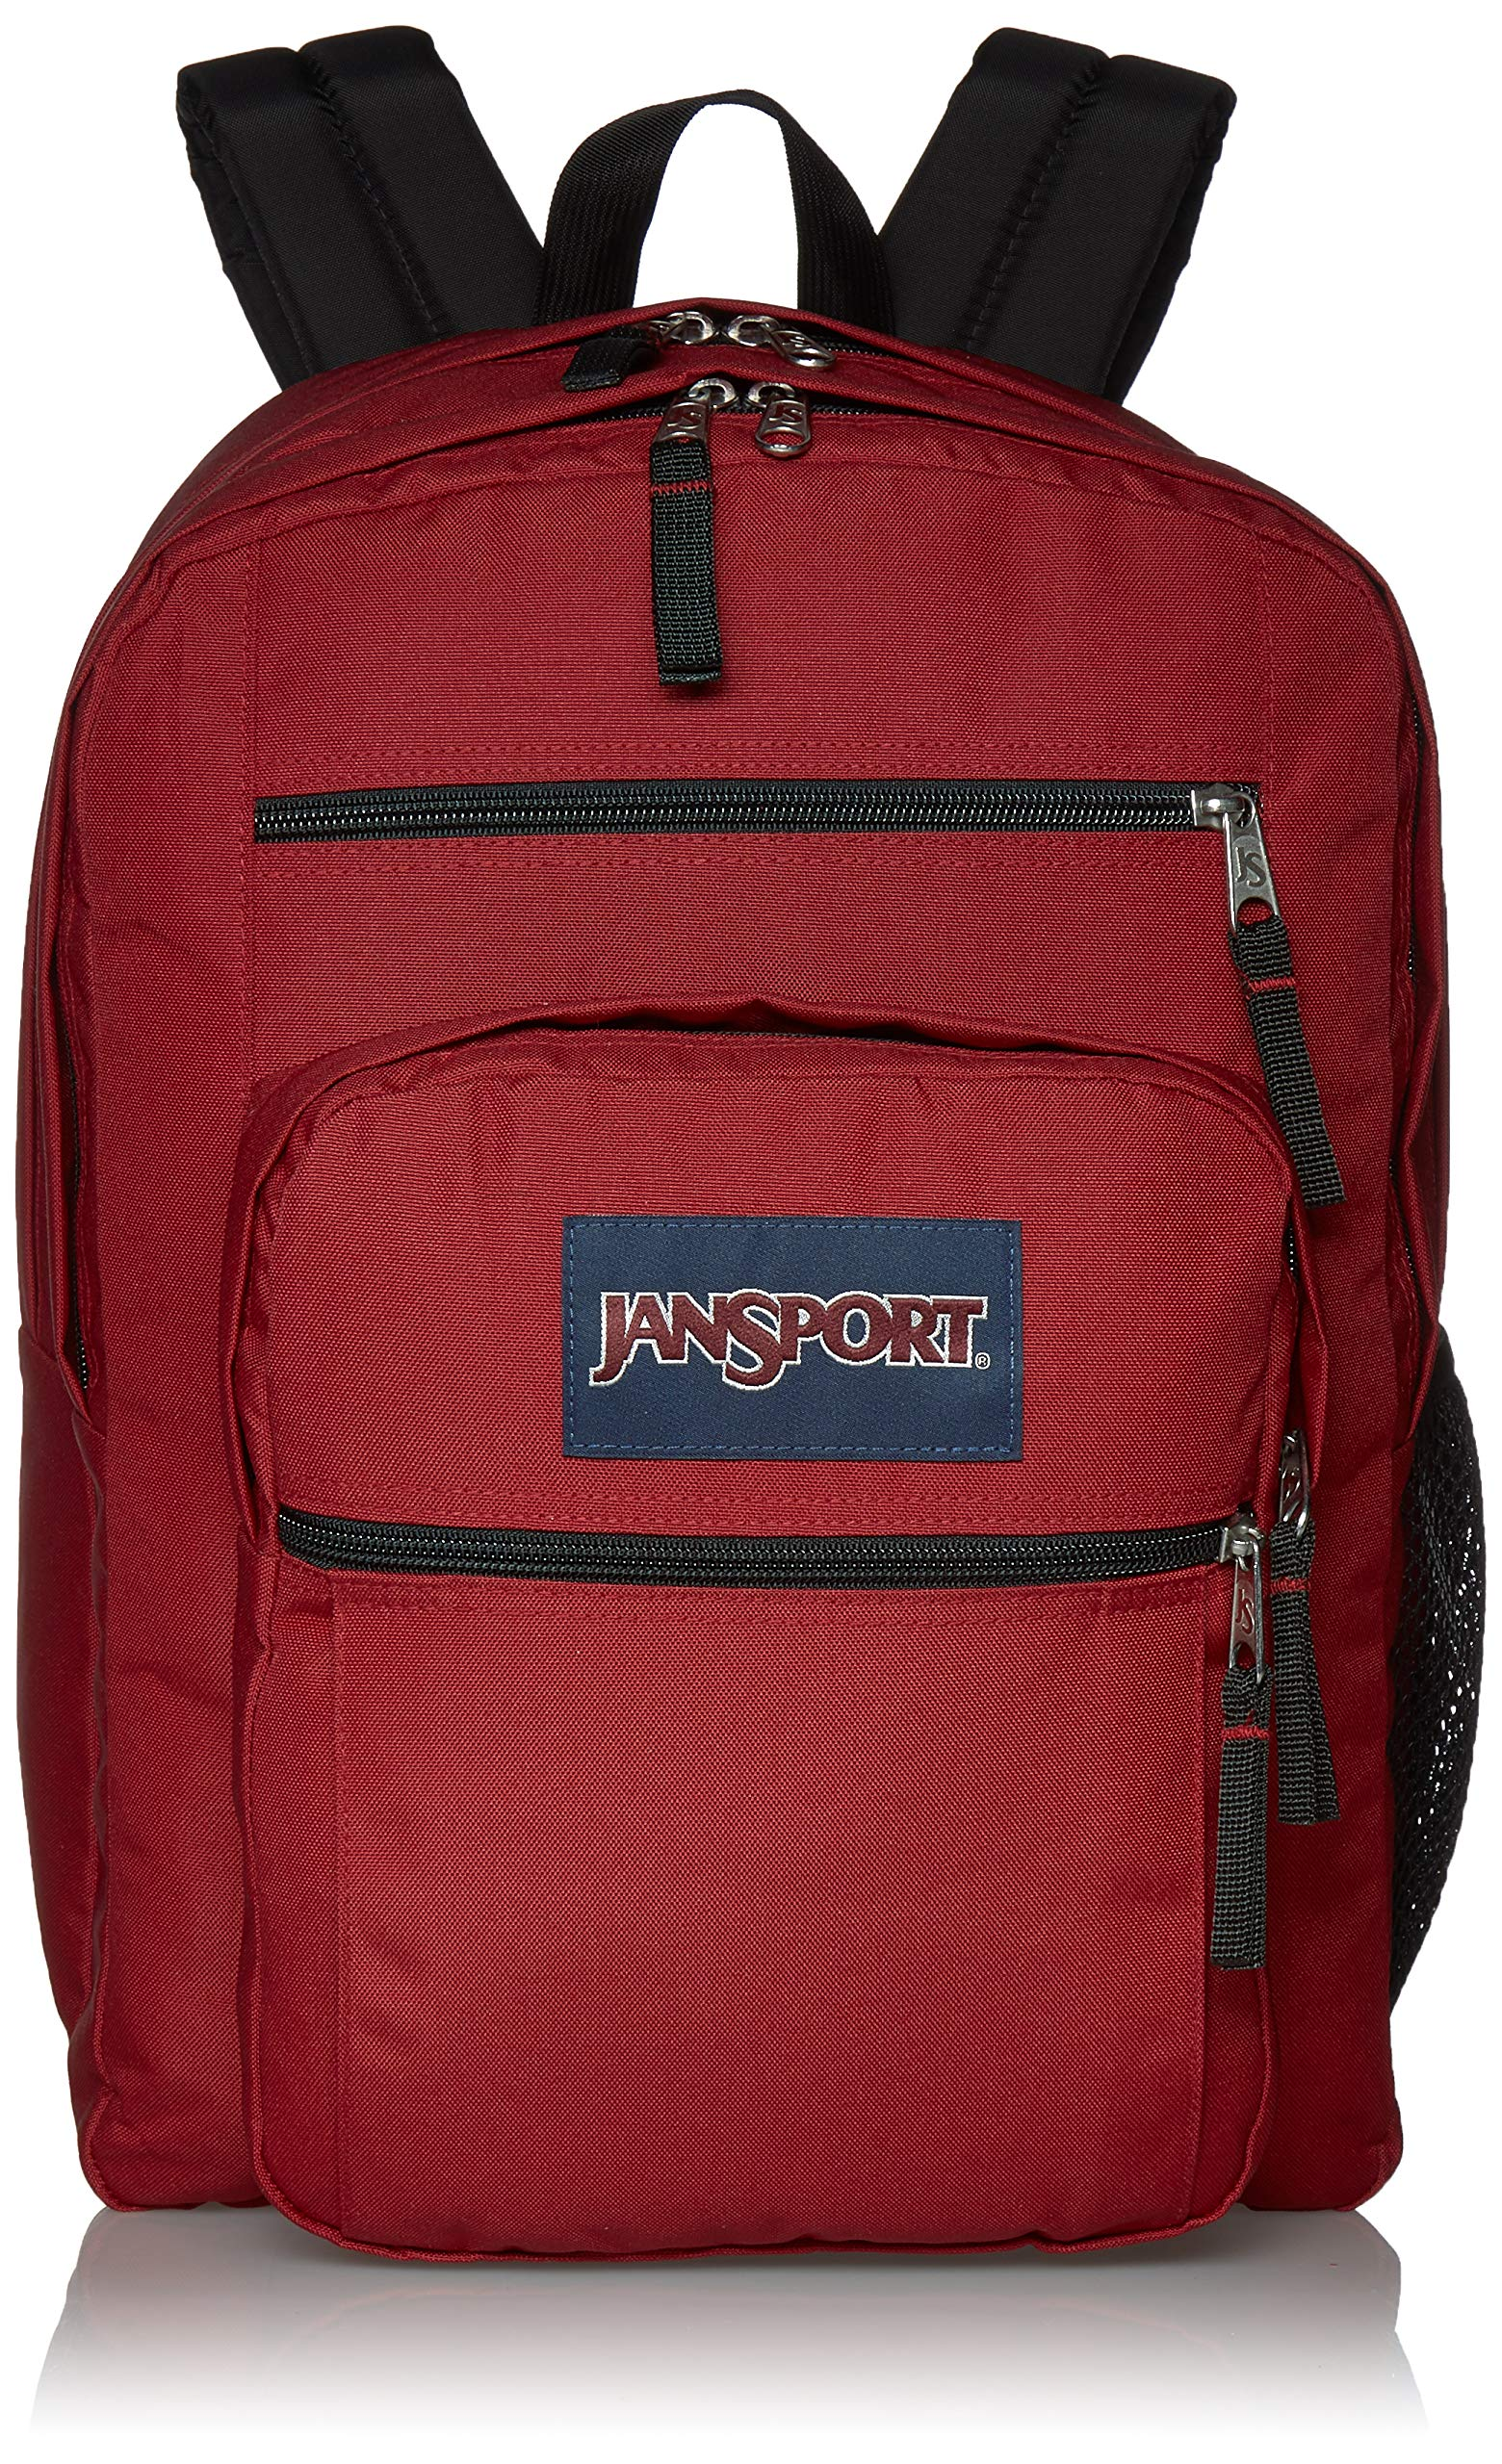 JanSport Big Student Backpack - 15-inch Laptop School Pack, Viking Red by JanSport